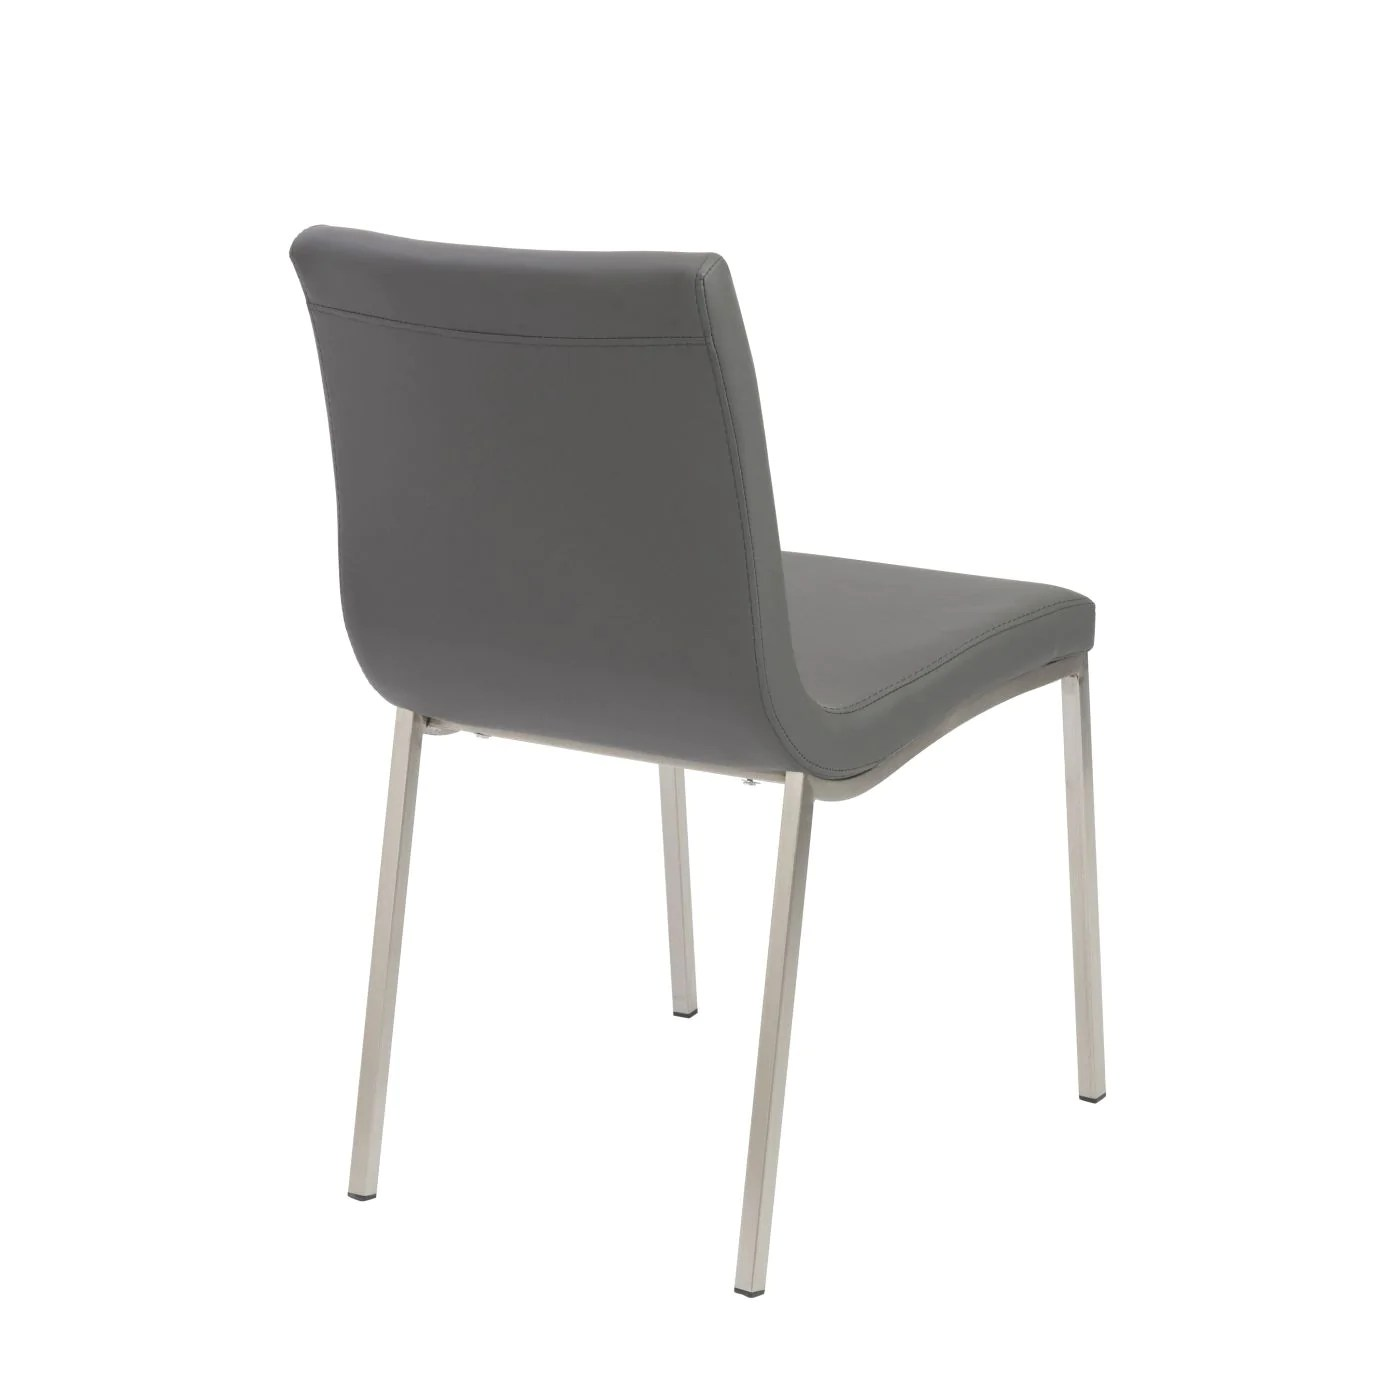 dining chairs with stainless steel legs chair covers dark grey euro style scott in gray brushed